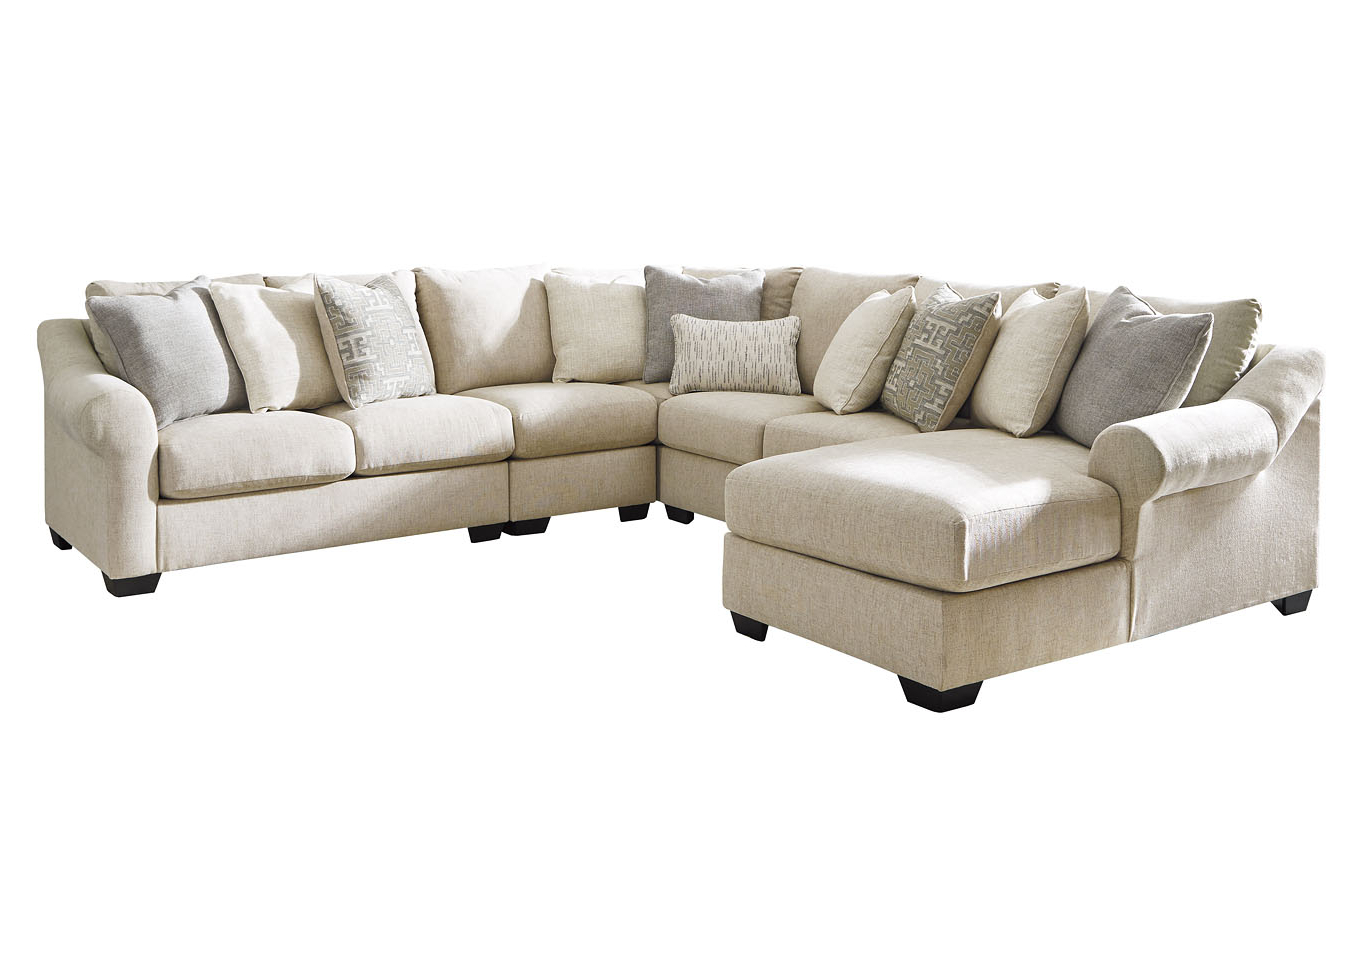 Best And Newest Carnaby 5 Piece Sectional Chaise Ashley Furniture Throughout Setoril Modern Sectional Sofa Swith Chaise Woven Linen (View 5 of 20)